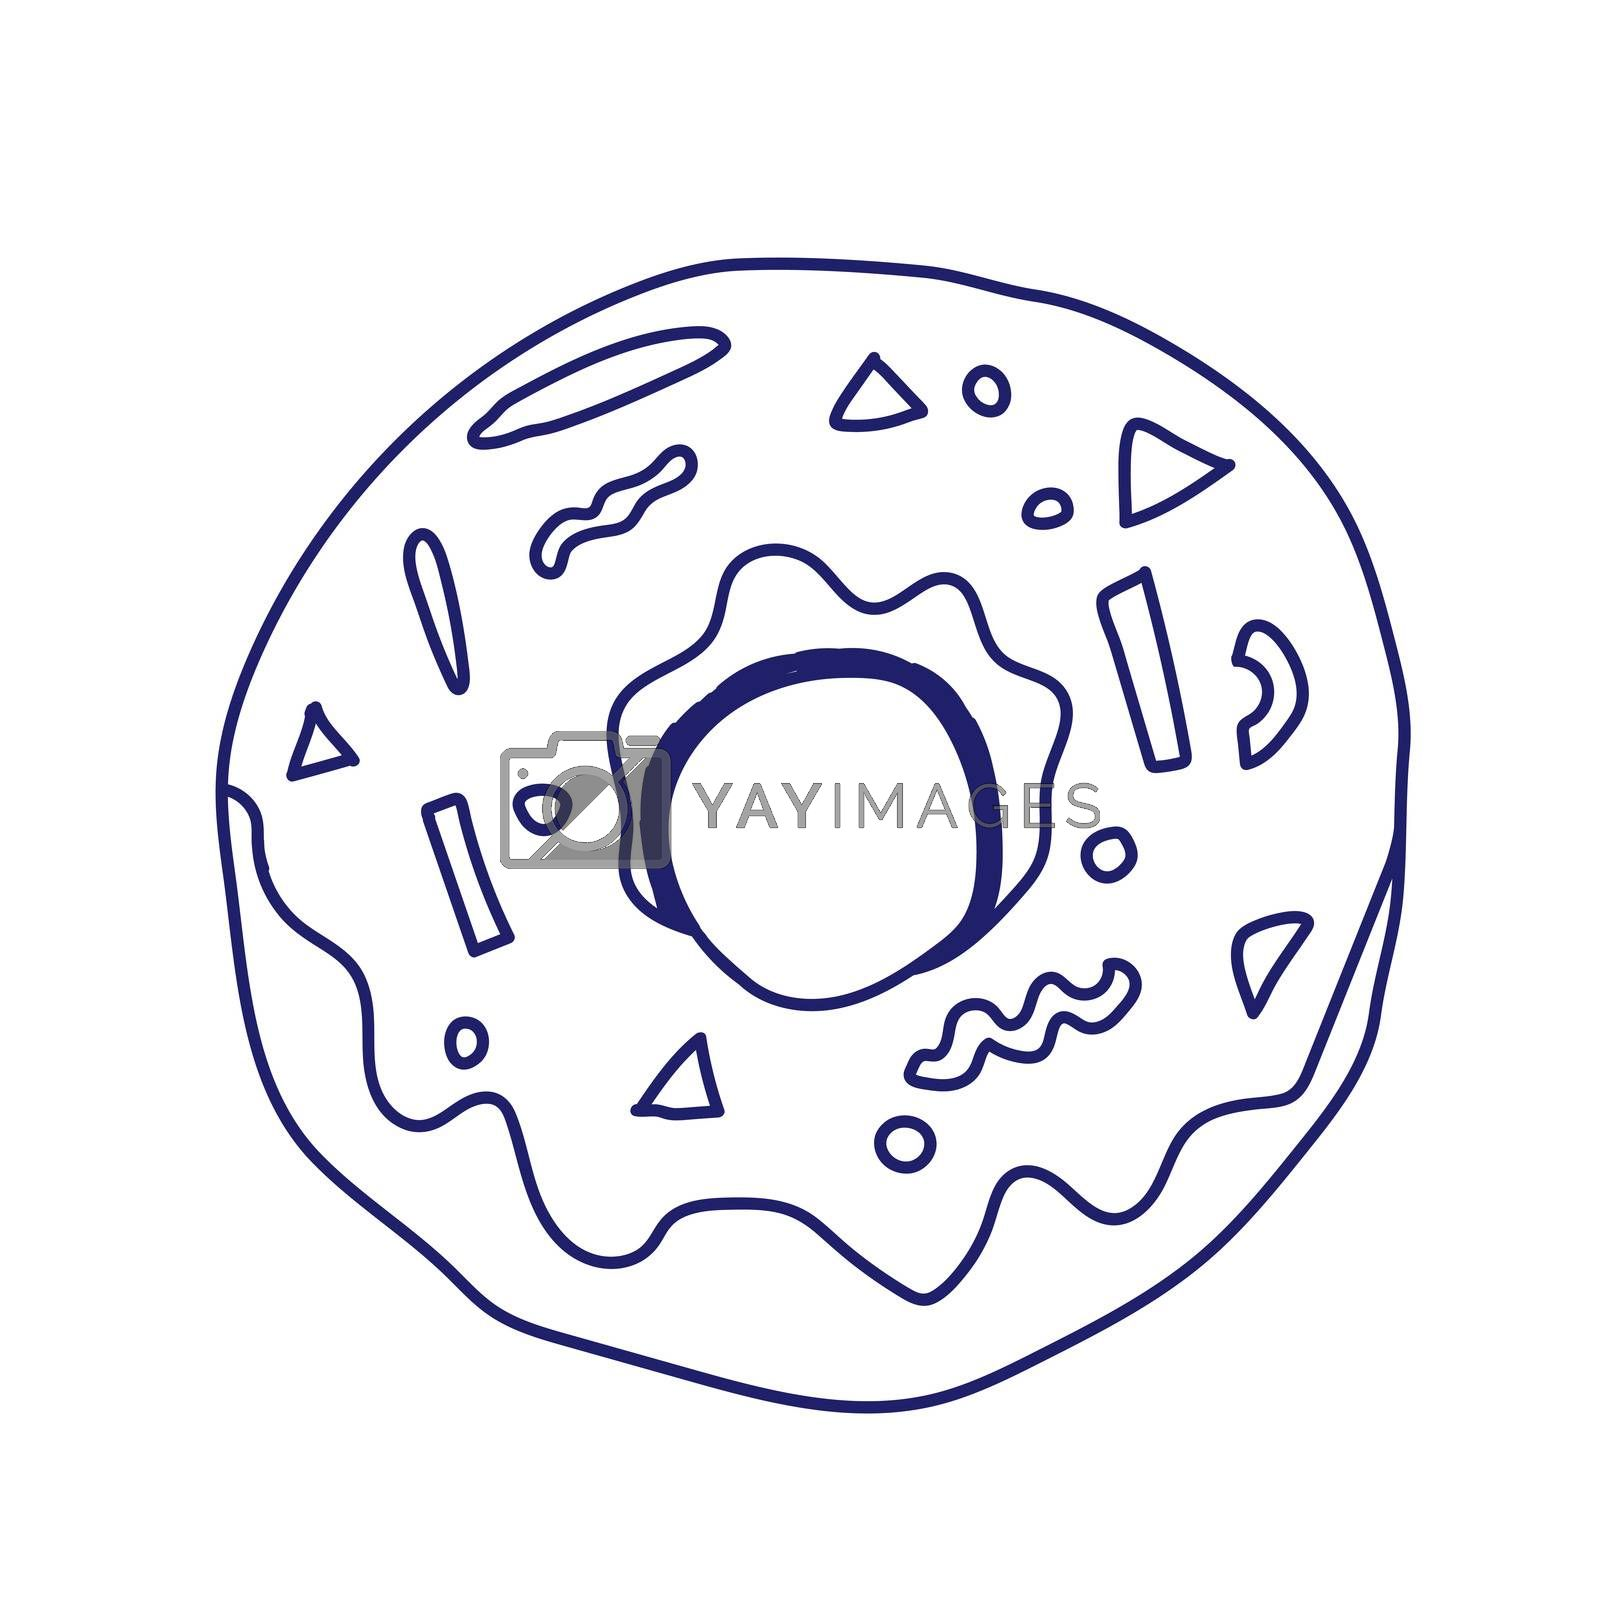 Donut isolated on white background. illustration in a doodle style. Line art. Perfect for restaurant menu design, cafe, kitchen, web site, print on the cloth. Appetizing food image